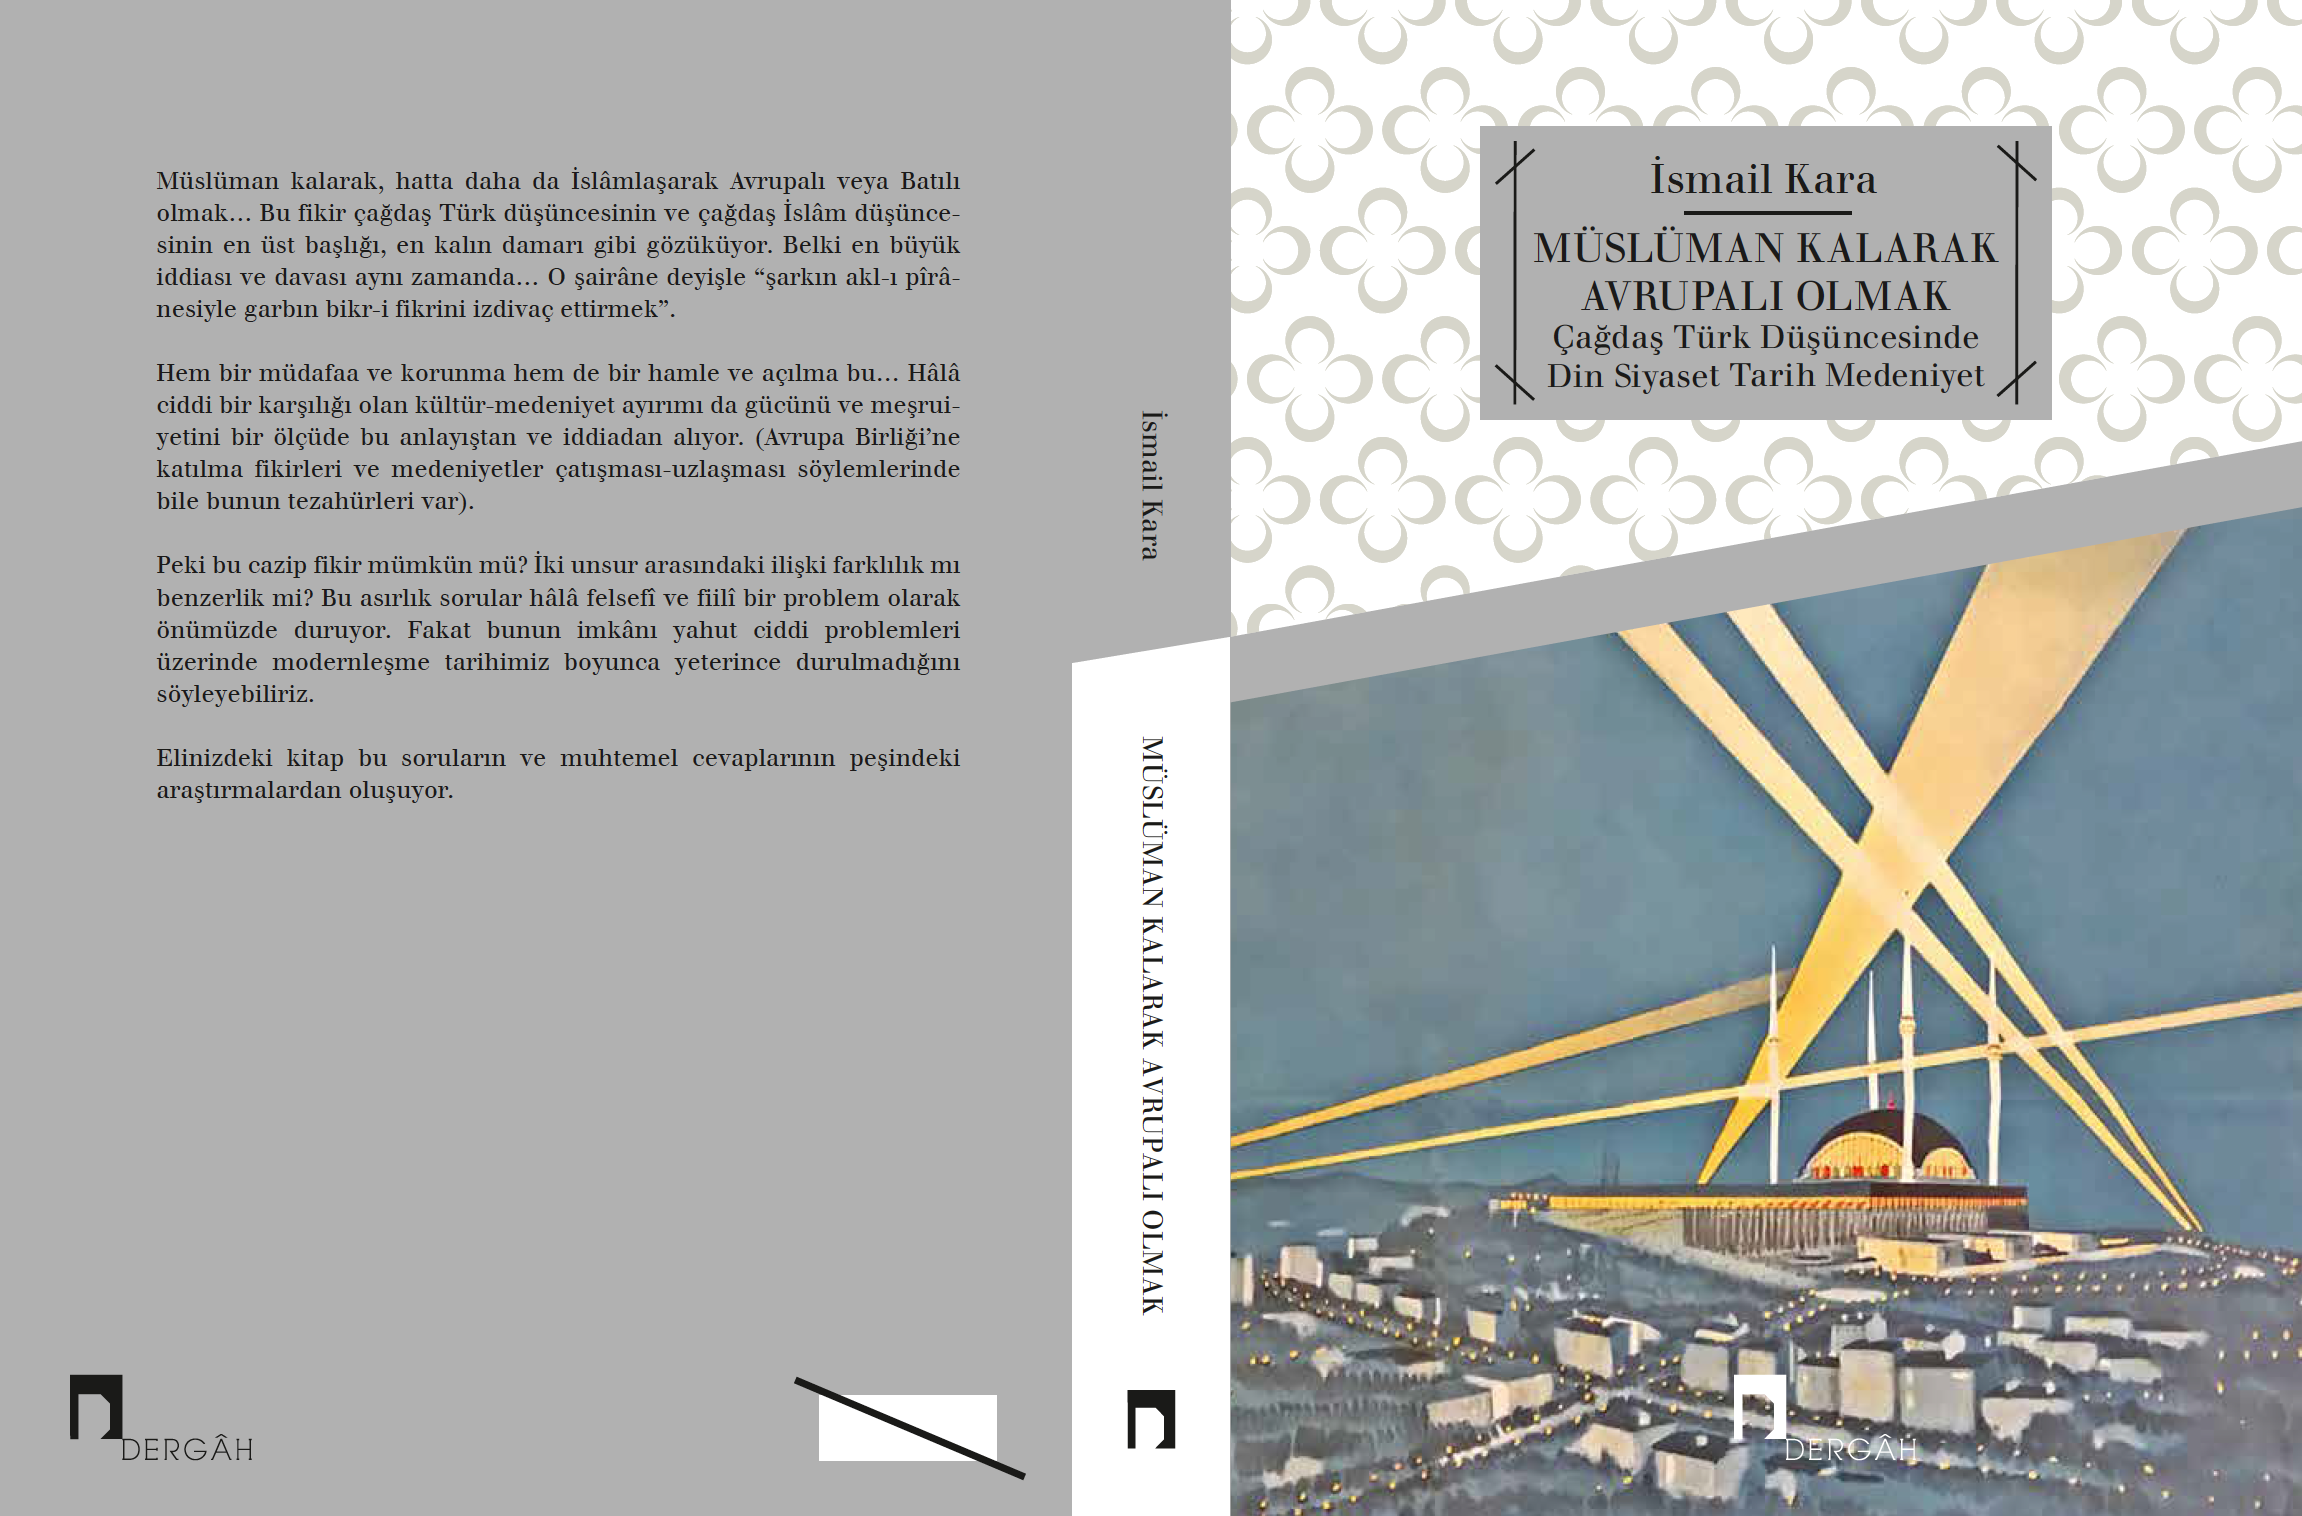 Islam and Islamism in Turkey: A Conversation with İsmail